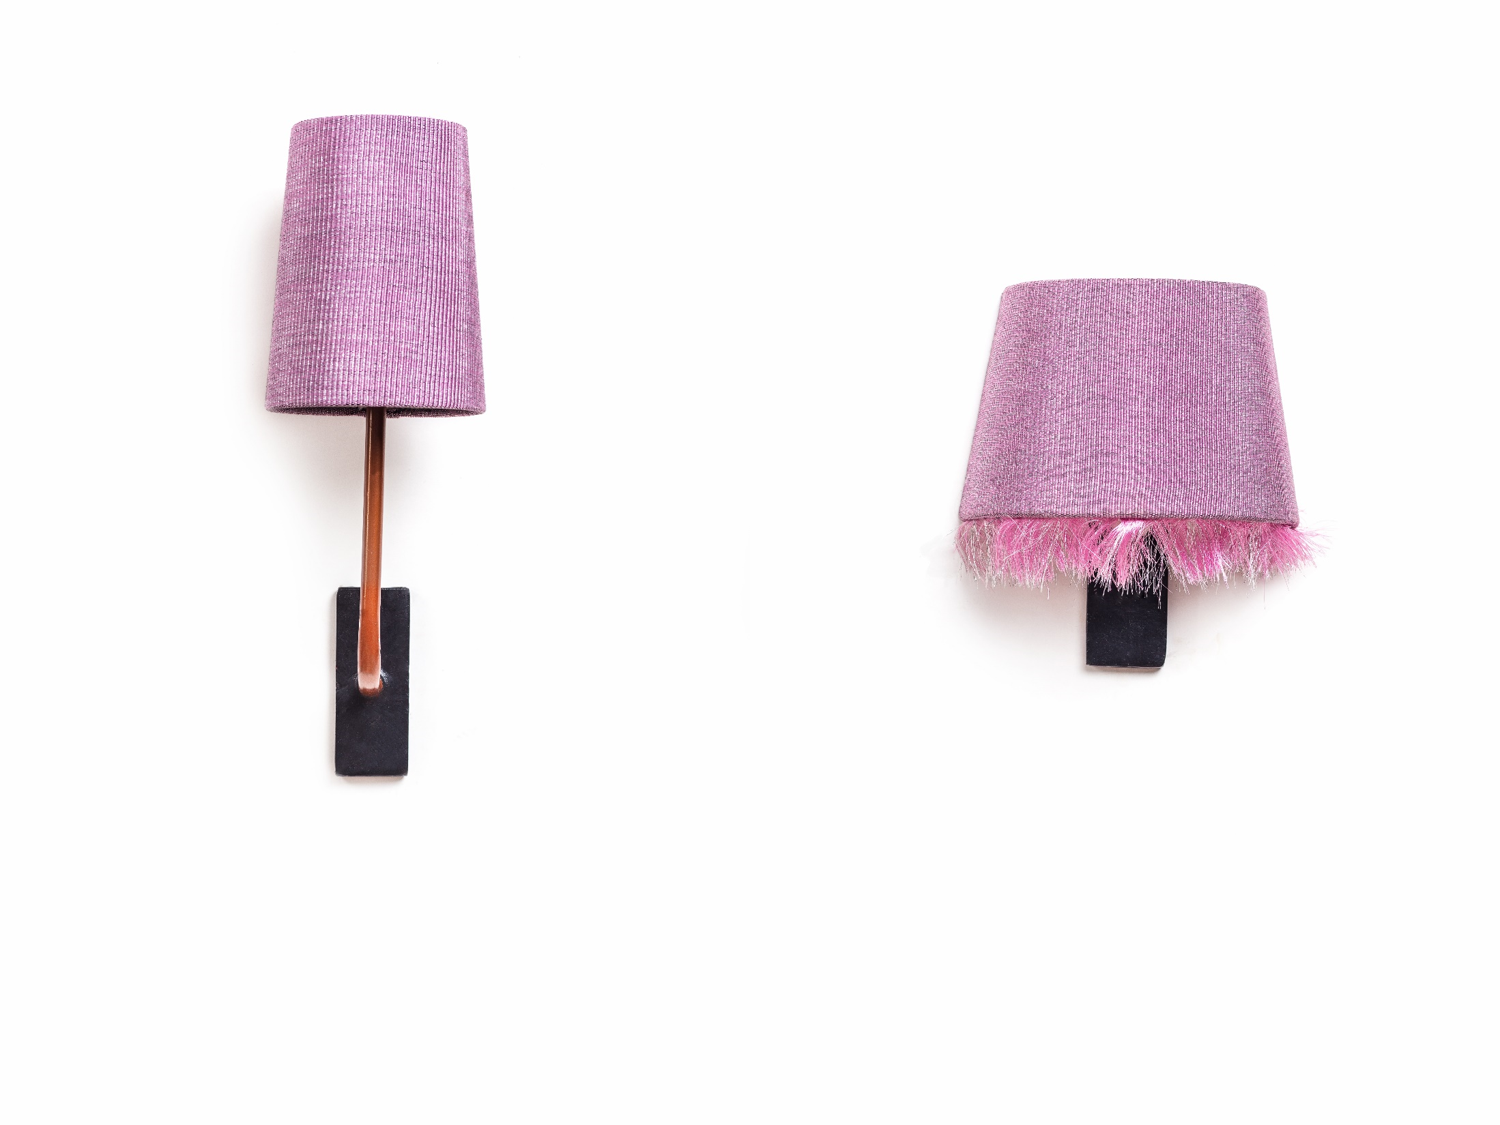 caxton-alile-living-candy-collection-idowu-cane-and-alaba-wall-sconce-shade